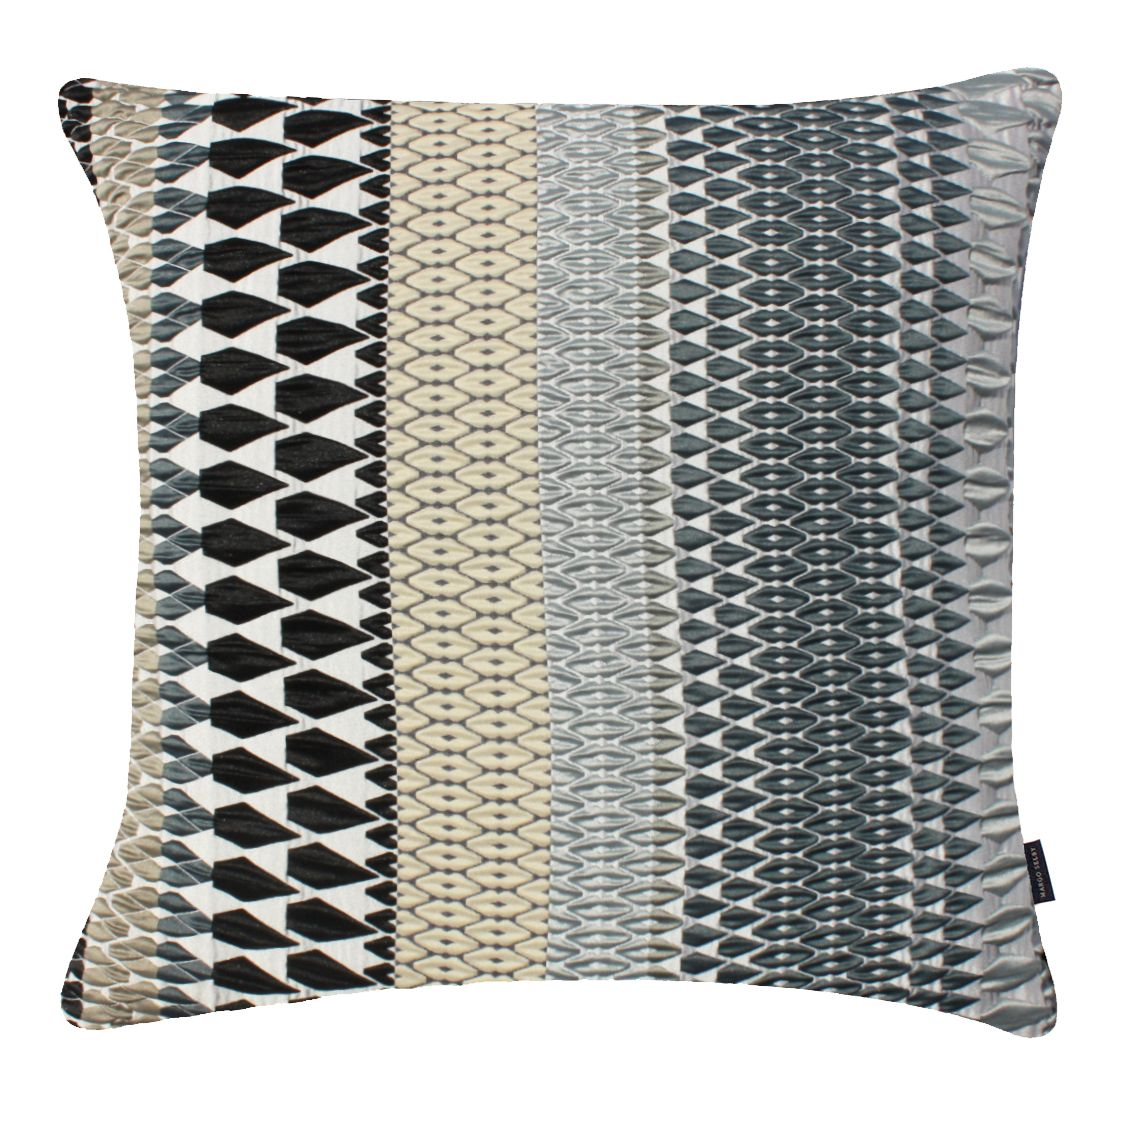 Margo Selby for John Lewis Margo Selby for John Lewis Iceni Cushion